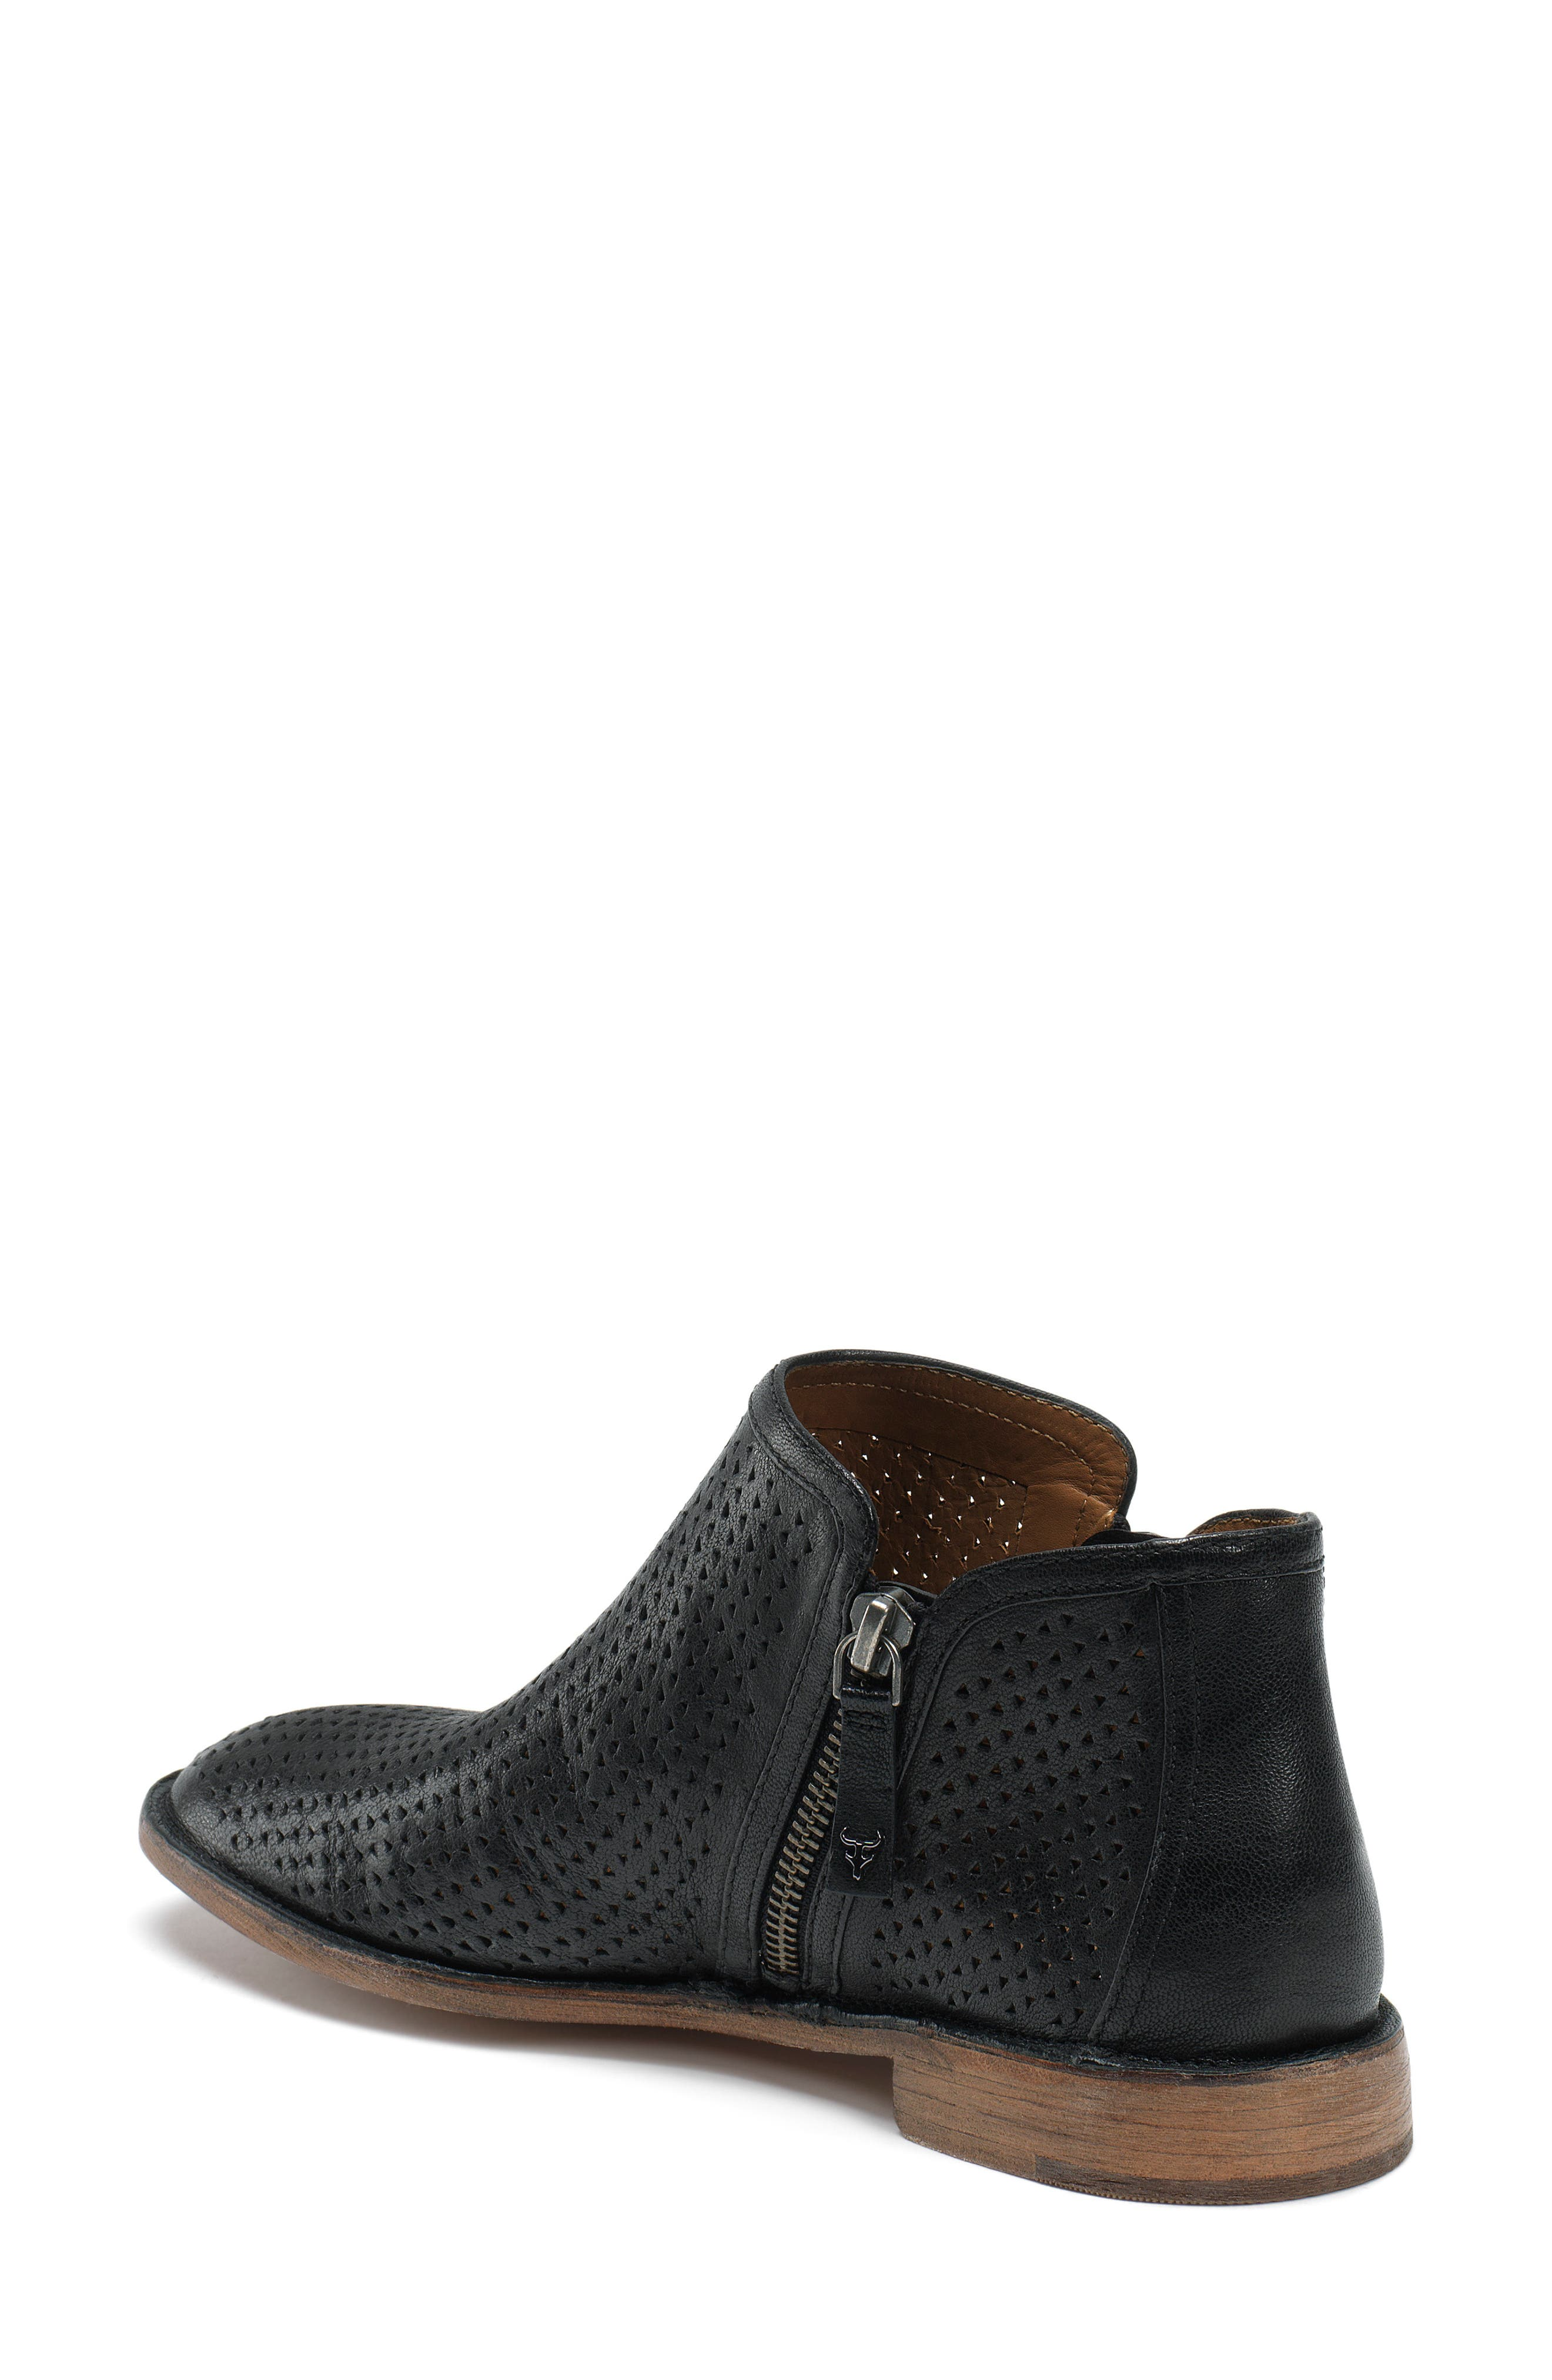 TRASK, Addison Low Perforated Bootie, Alternate thumbnail 2, color, 001